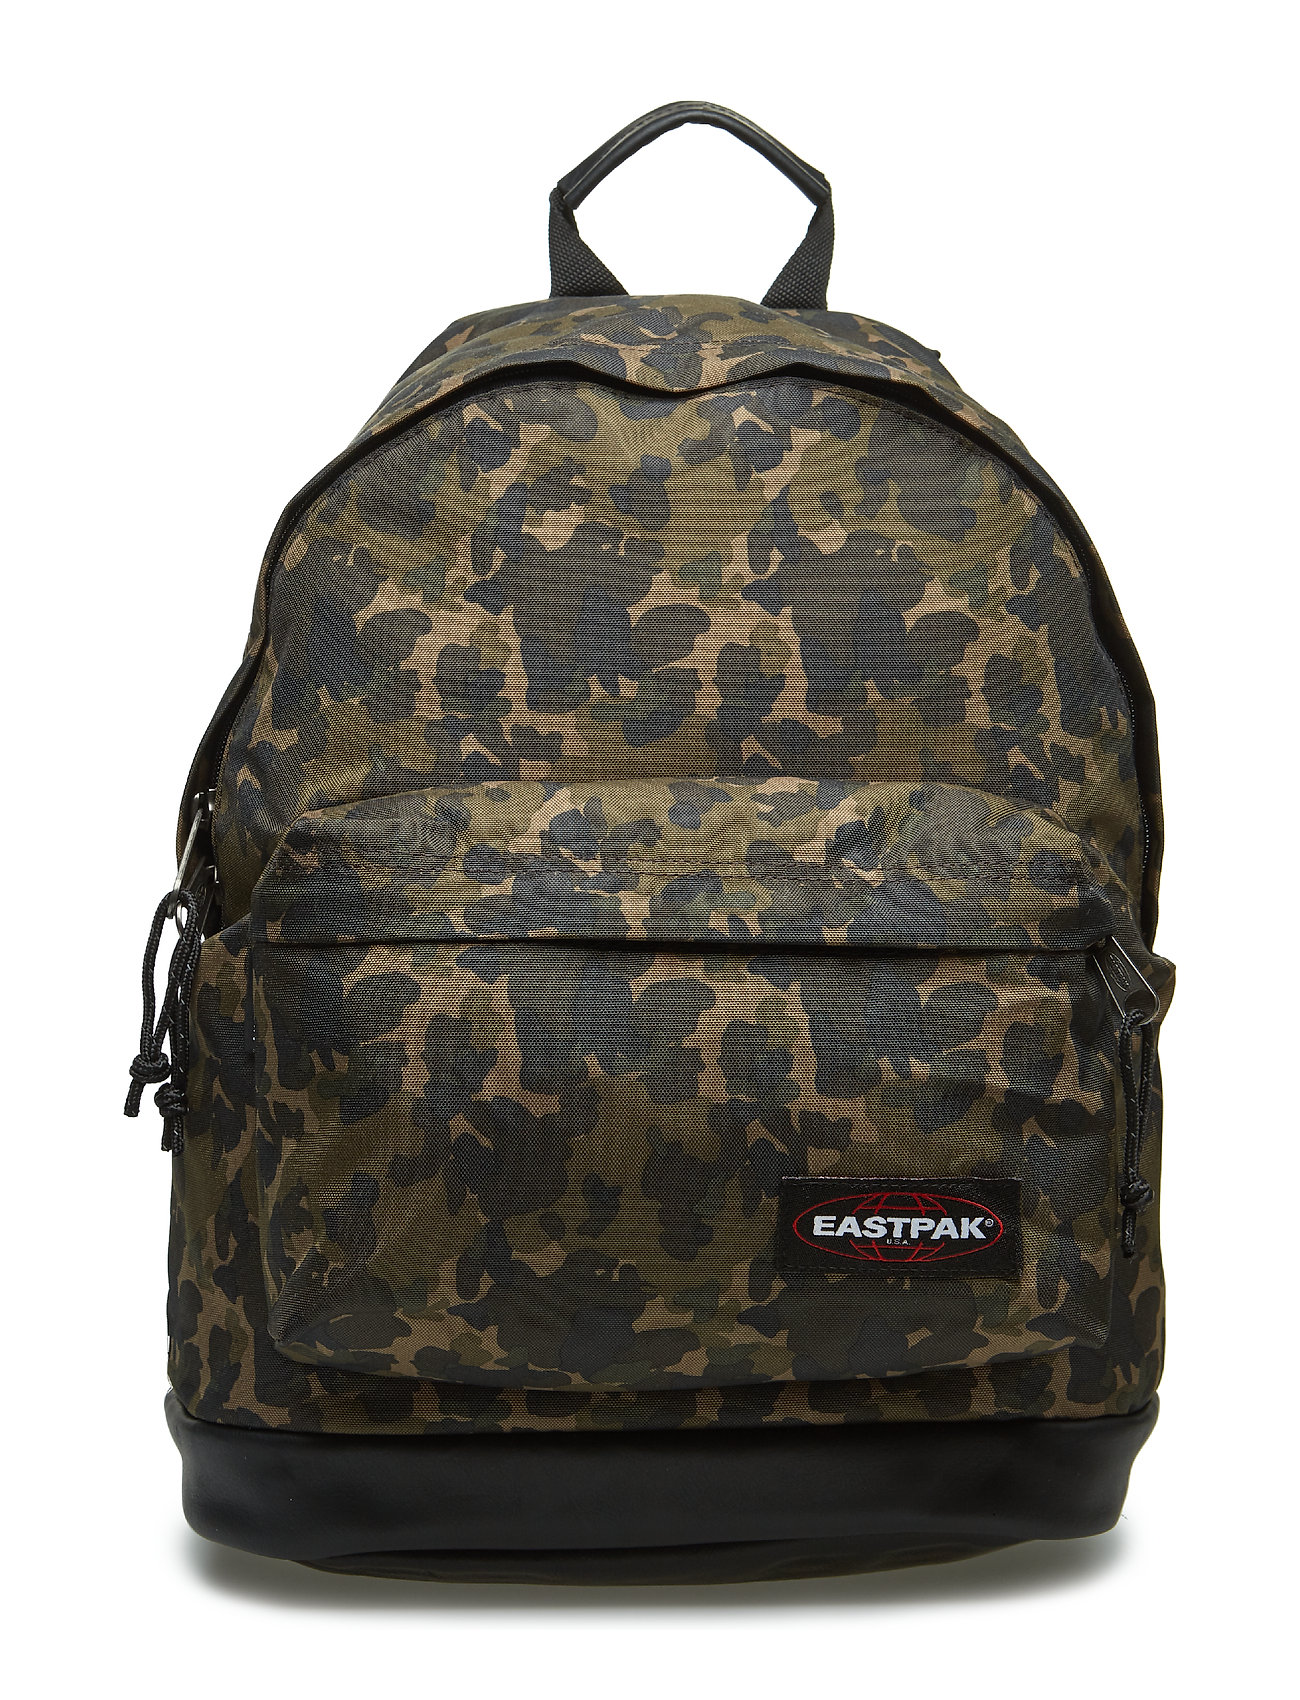 Eastpak WYOMING - CAMO OP